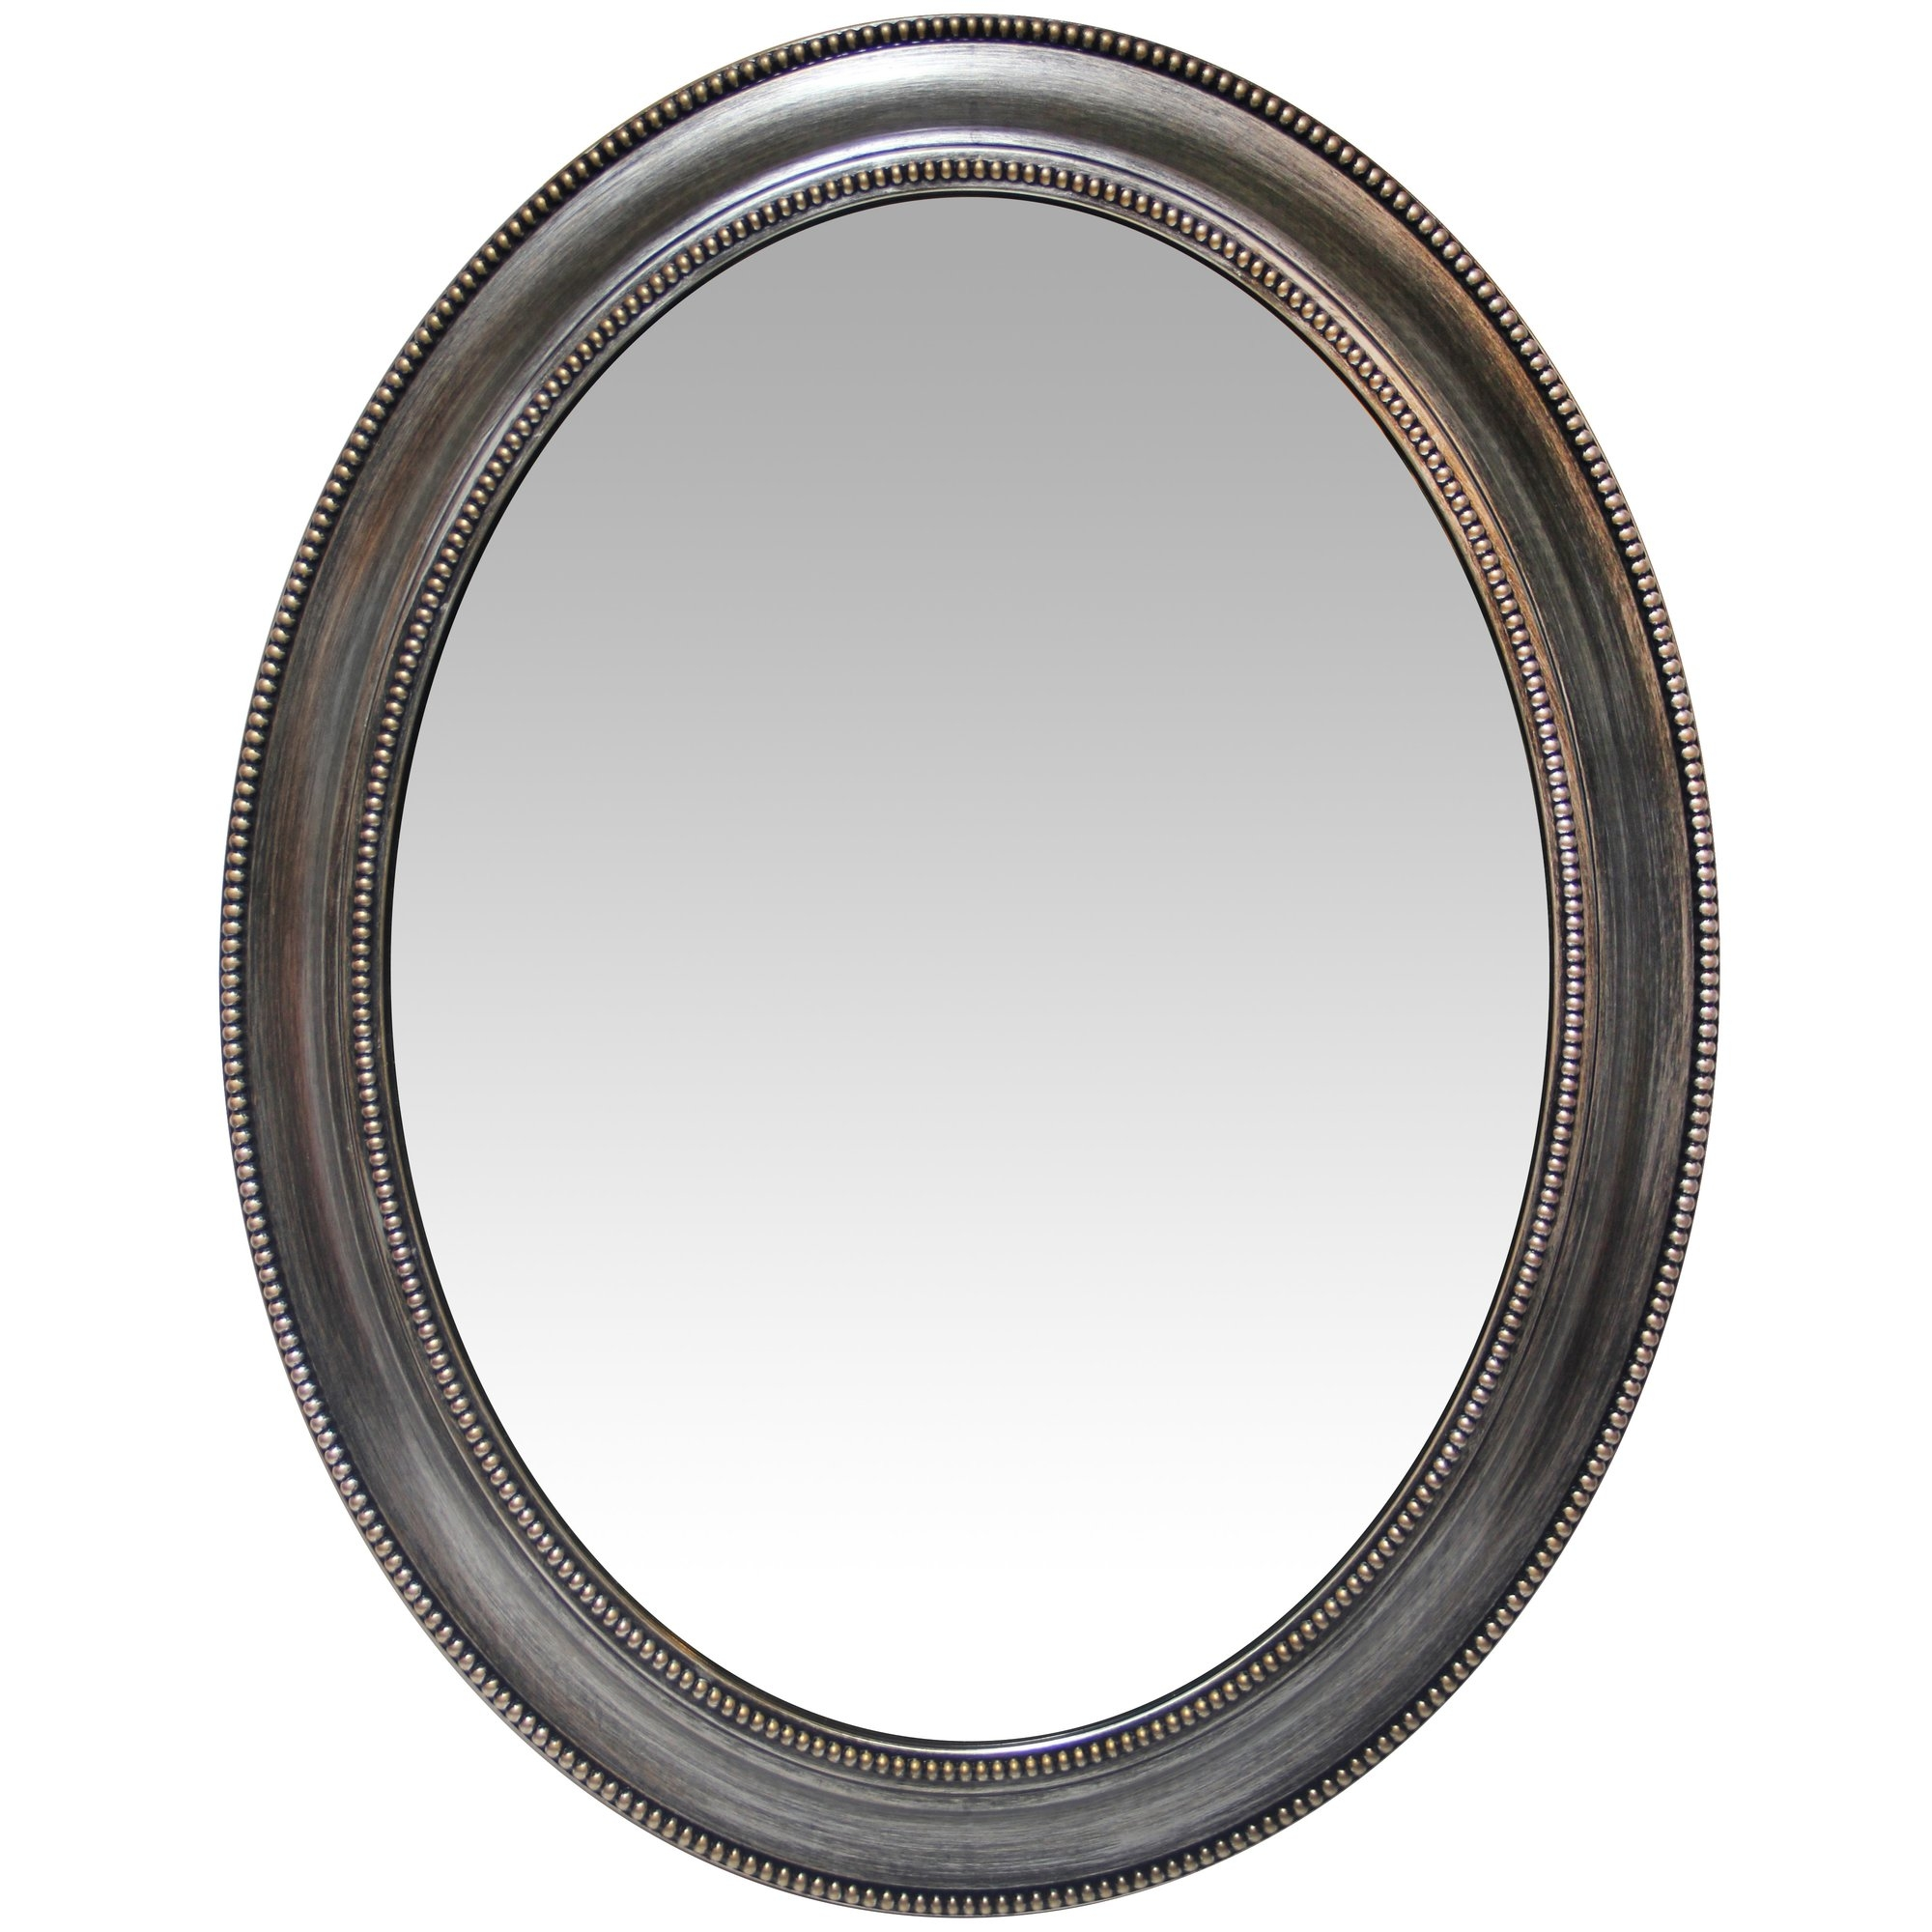 Charlton Home Oval Antique Silver Accent Mirror Reviews Wayfair In Silver Oval Mirror (Image 4 of 15)